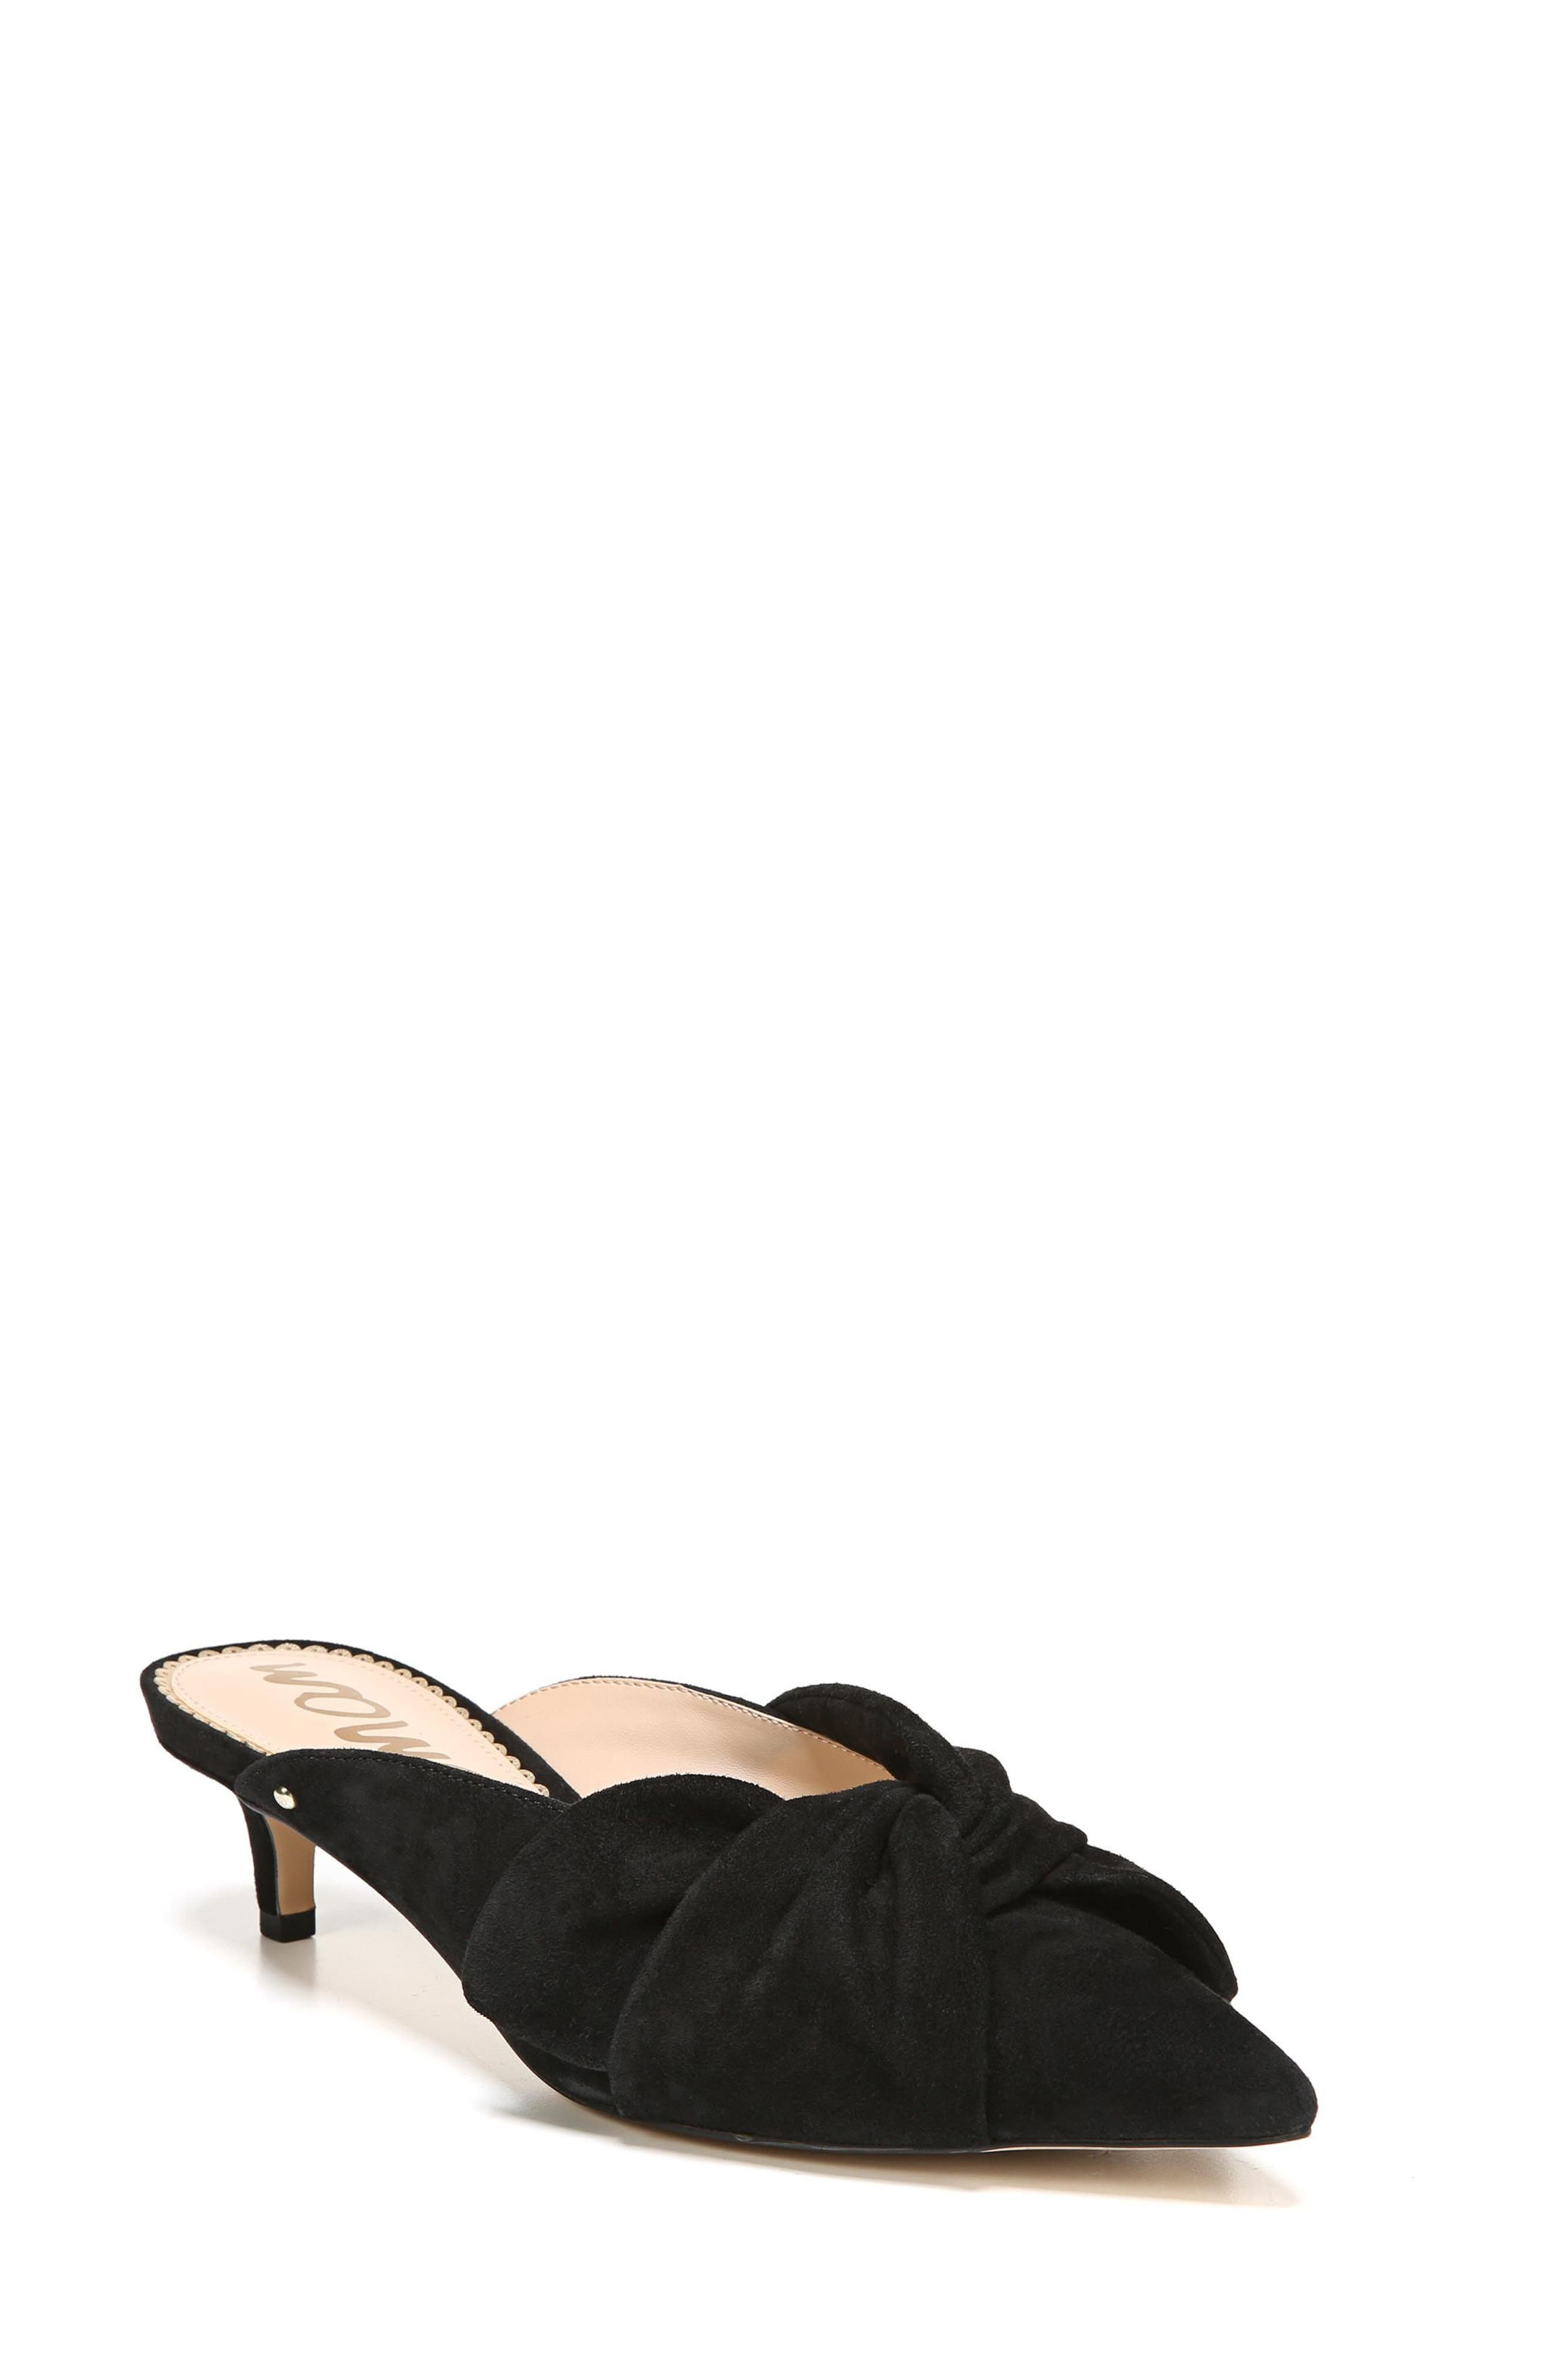 Laney Pointy Toe Mule,                         Main,                         color, 001